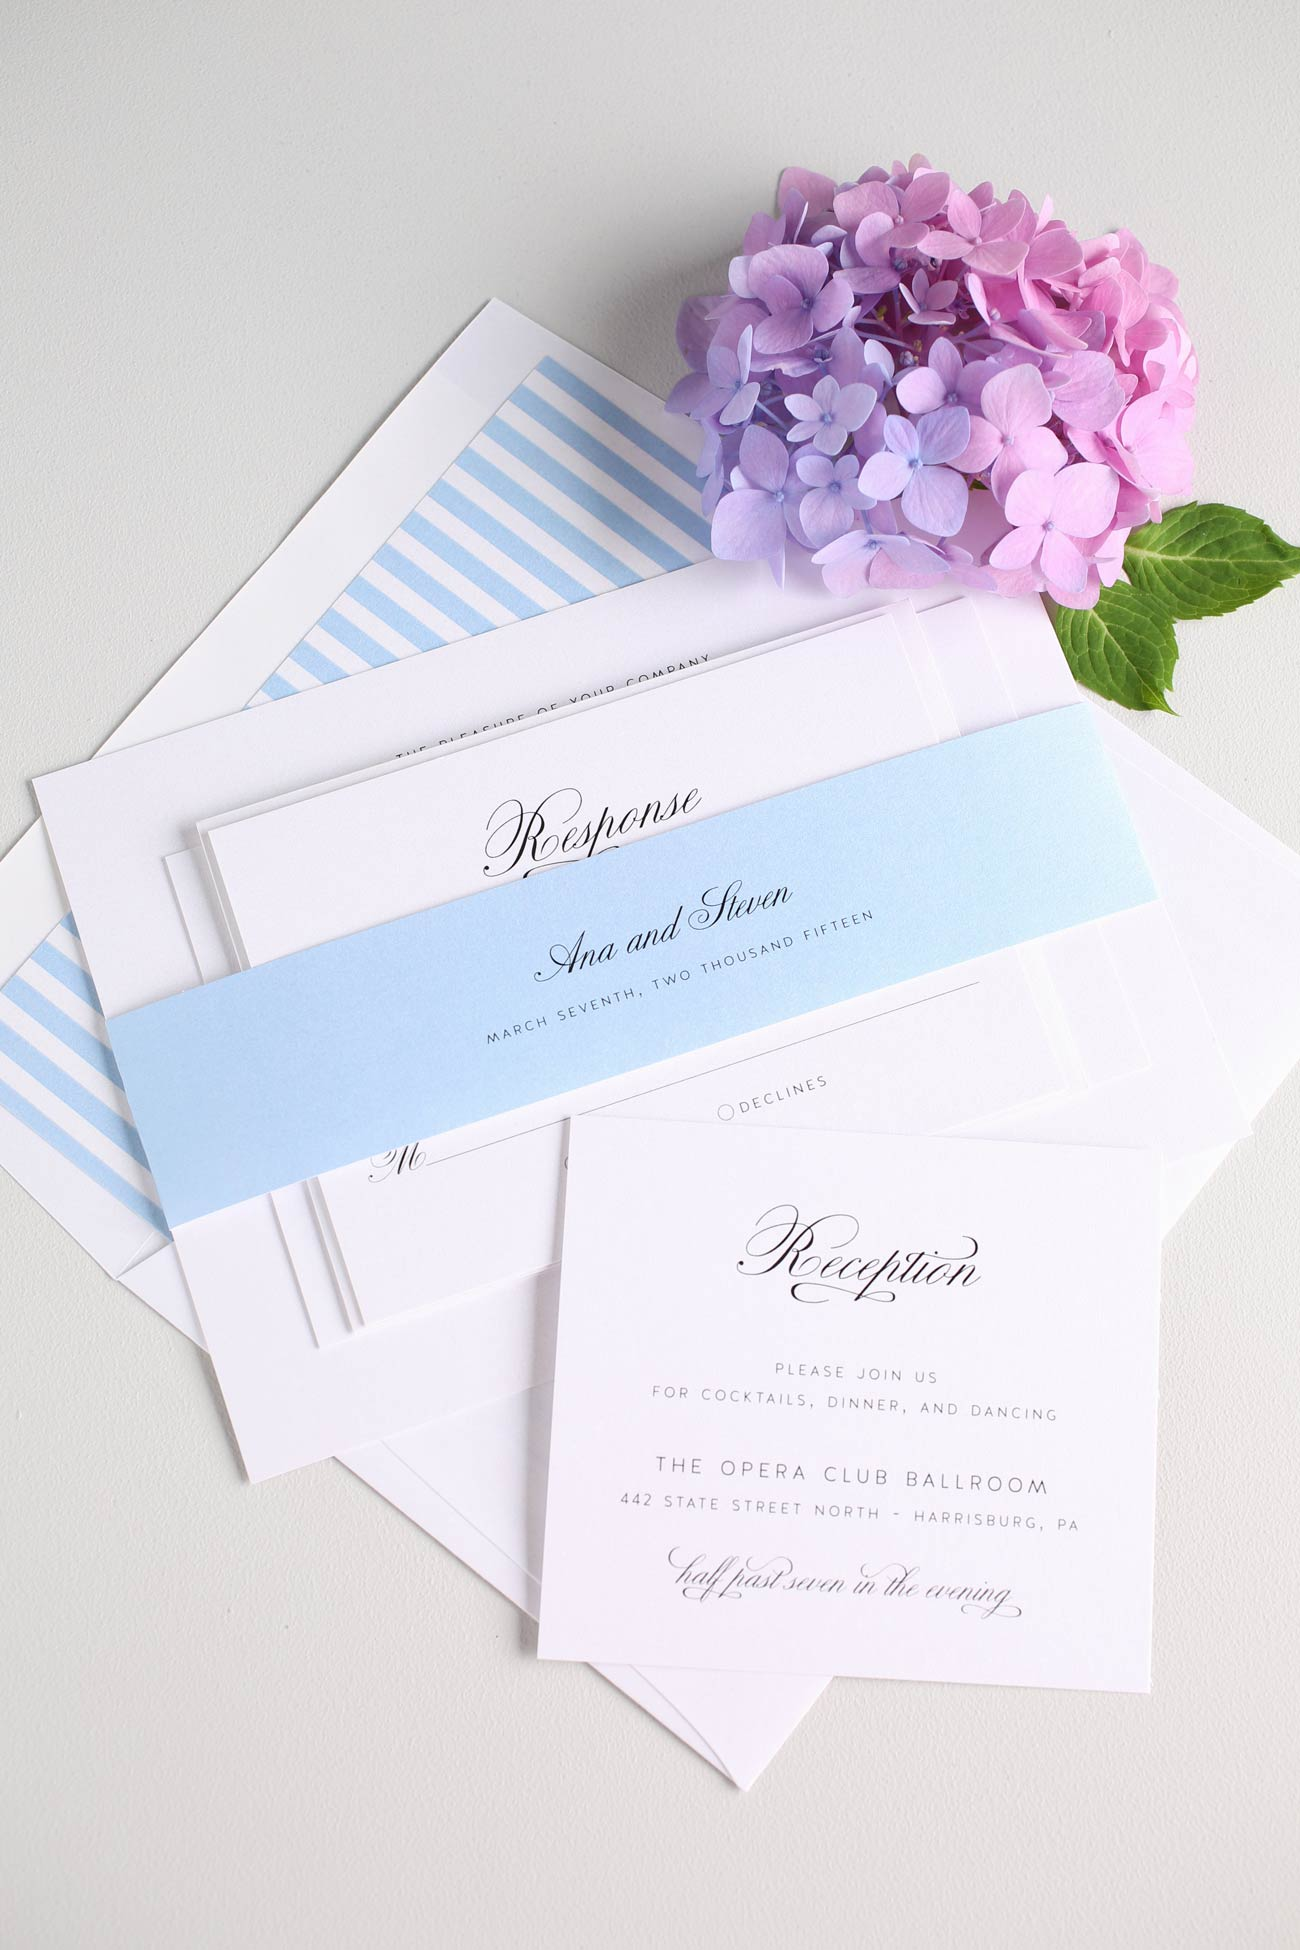 Serenity Wedding Invitations